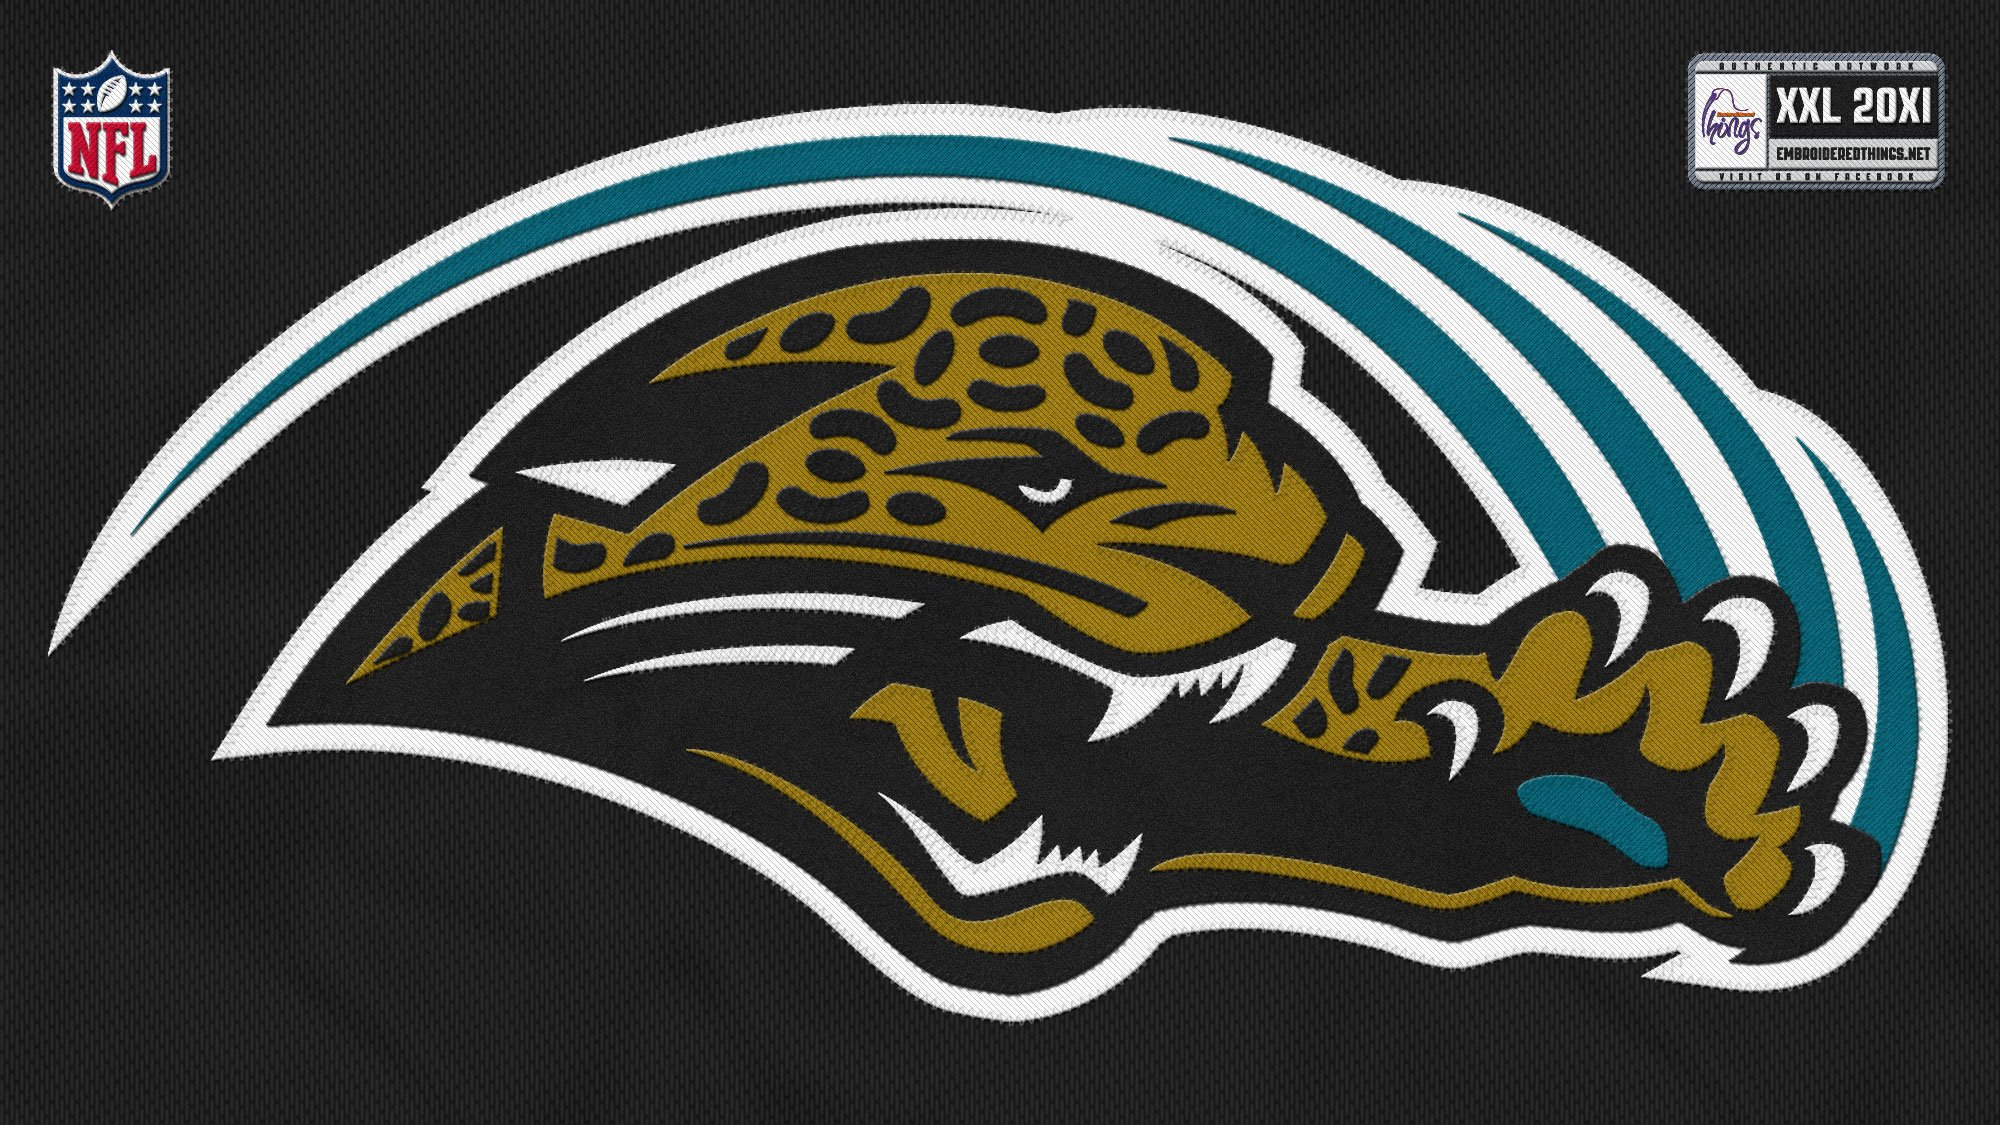 JACKSONVILLE JAGUARS nfl football f wallpaper 2000x1125 157805 2000x1125